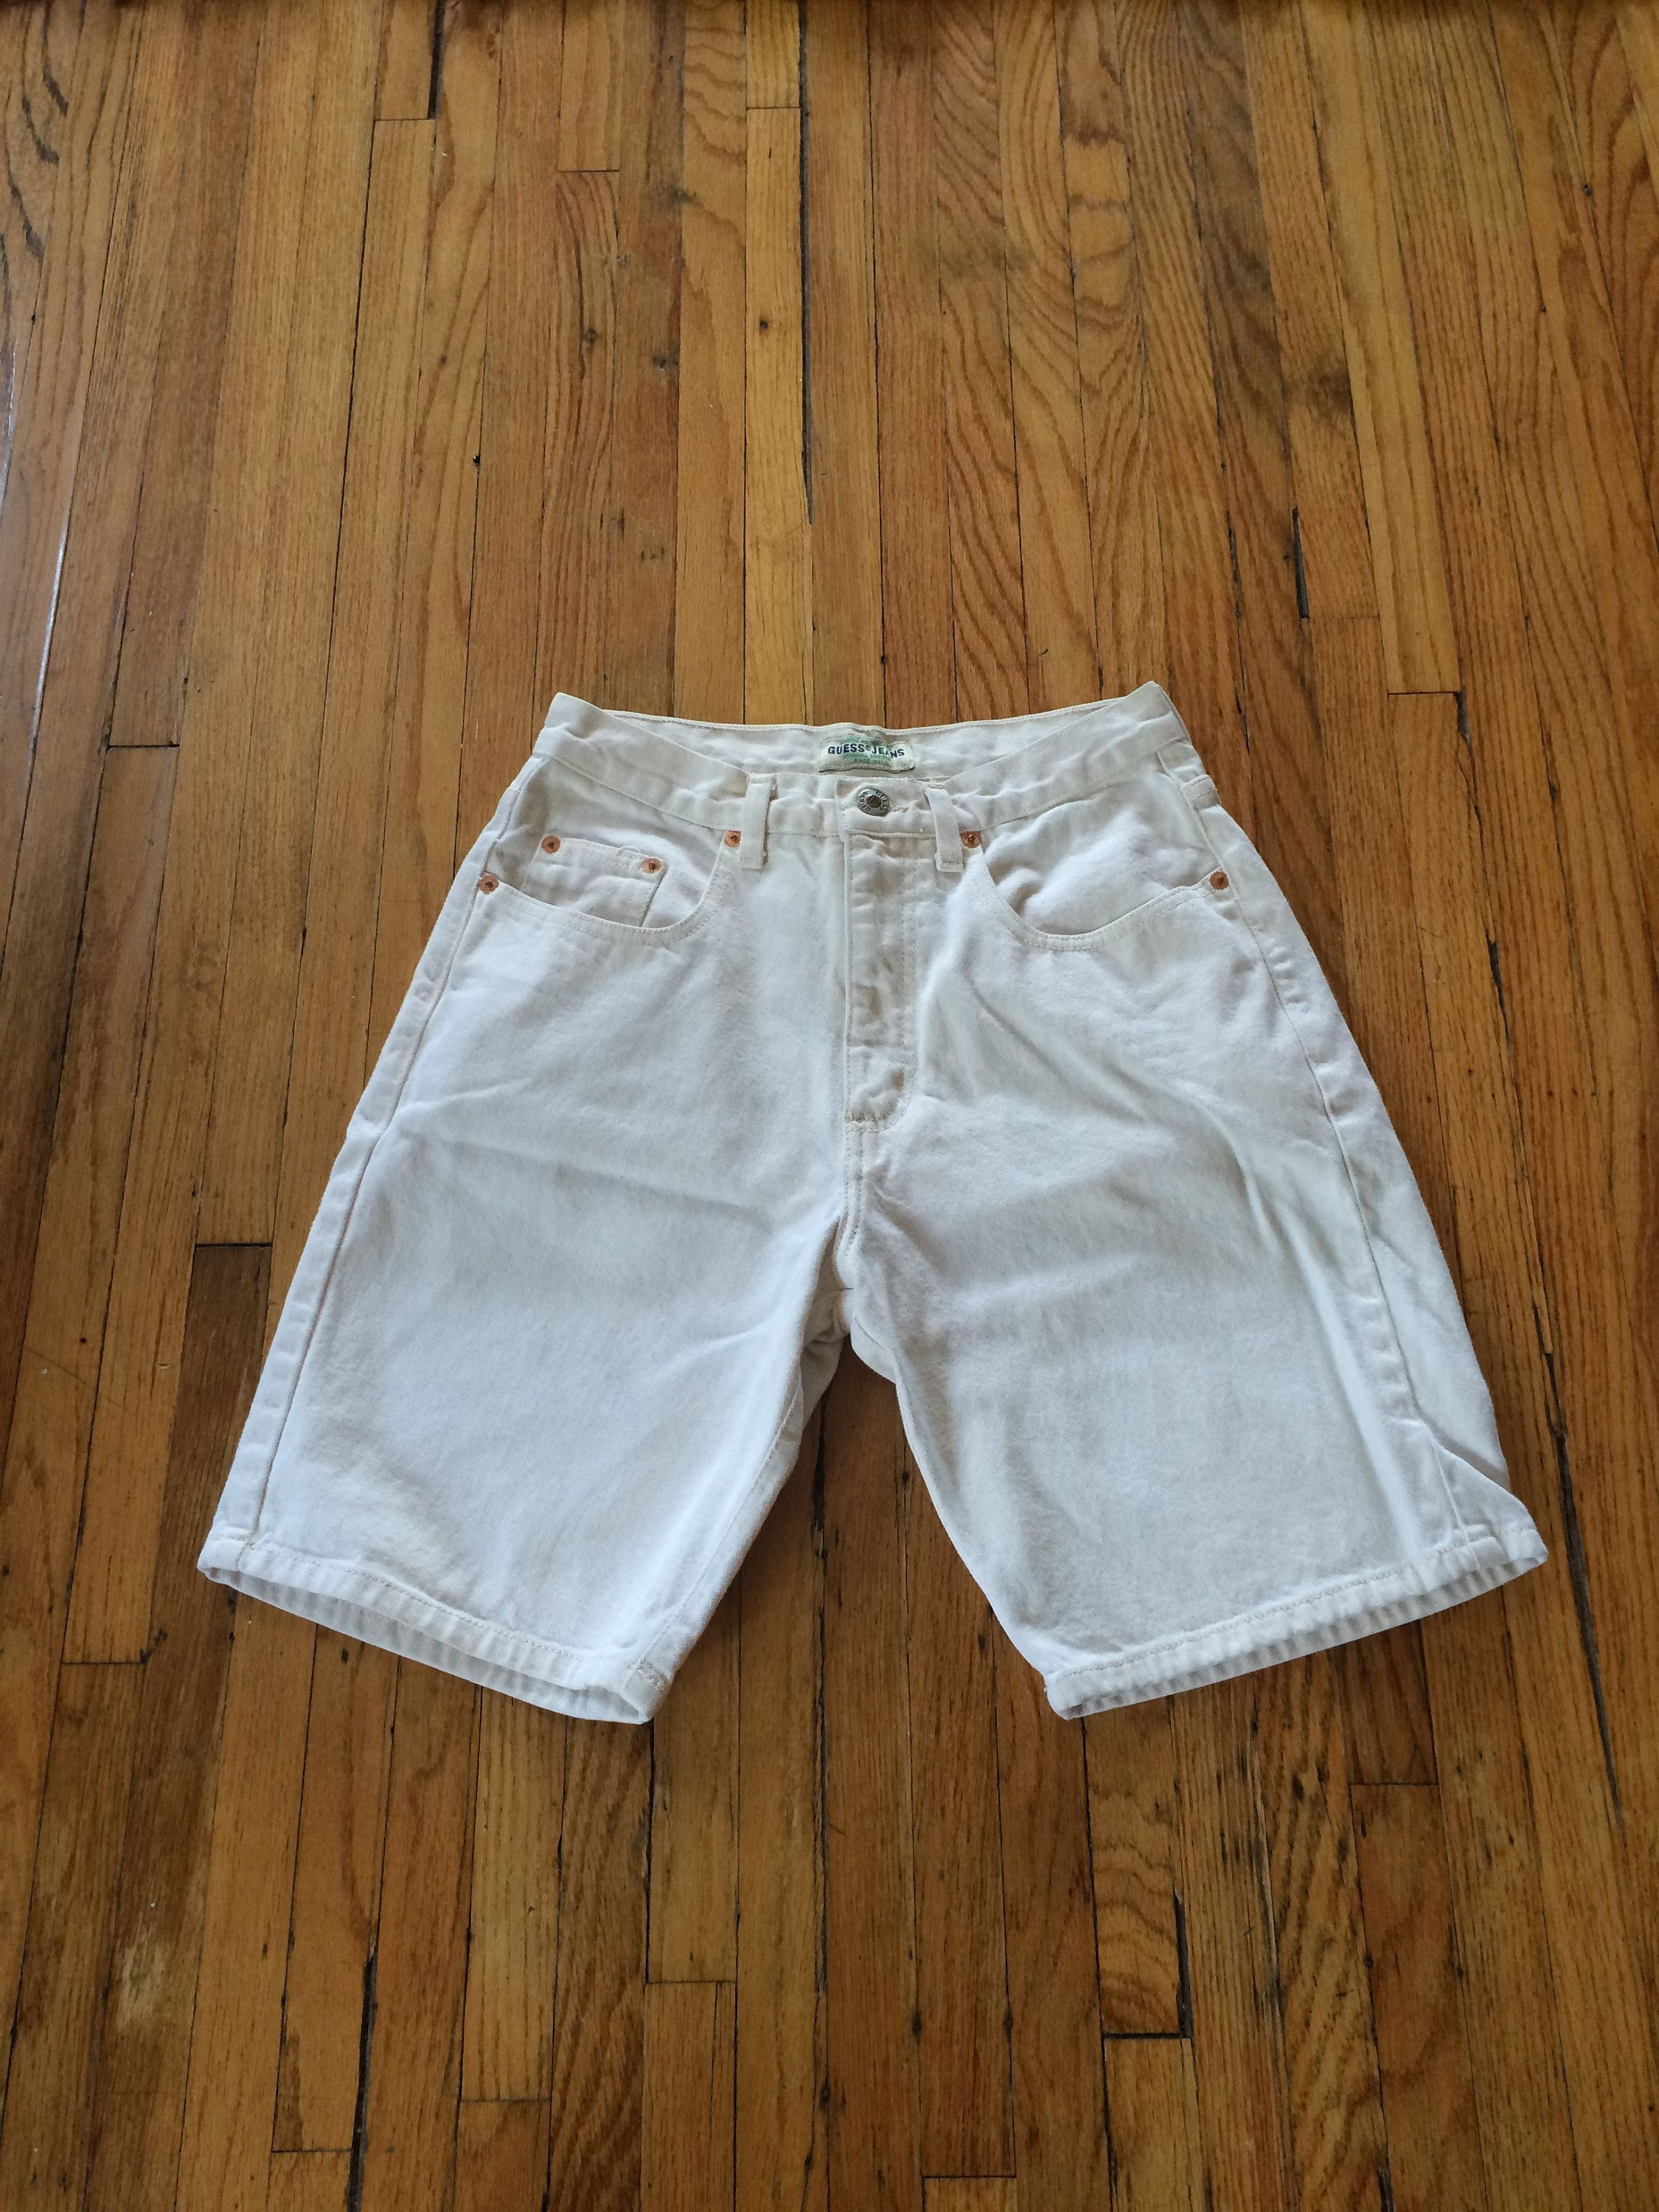 034a6a09fa Vintage Guess Off White Colored High Waist Denim Jean Shorts (90's) by  VintageVanShop on Etsy